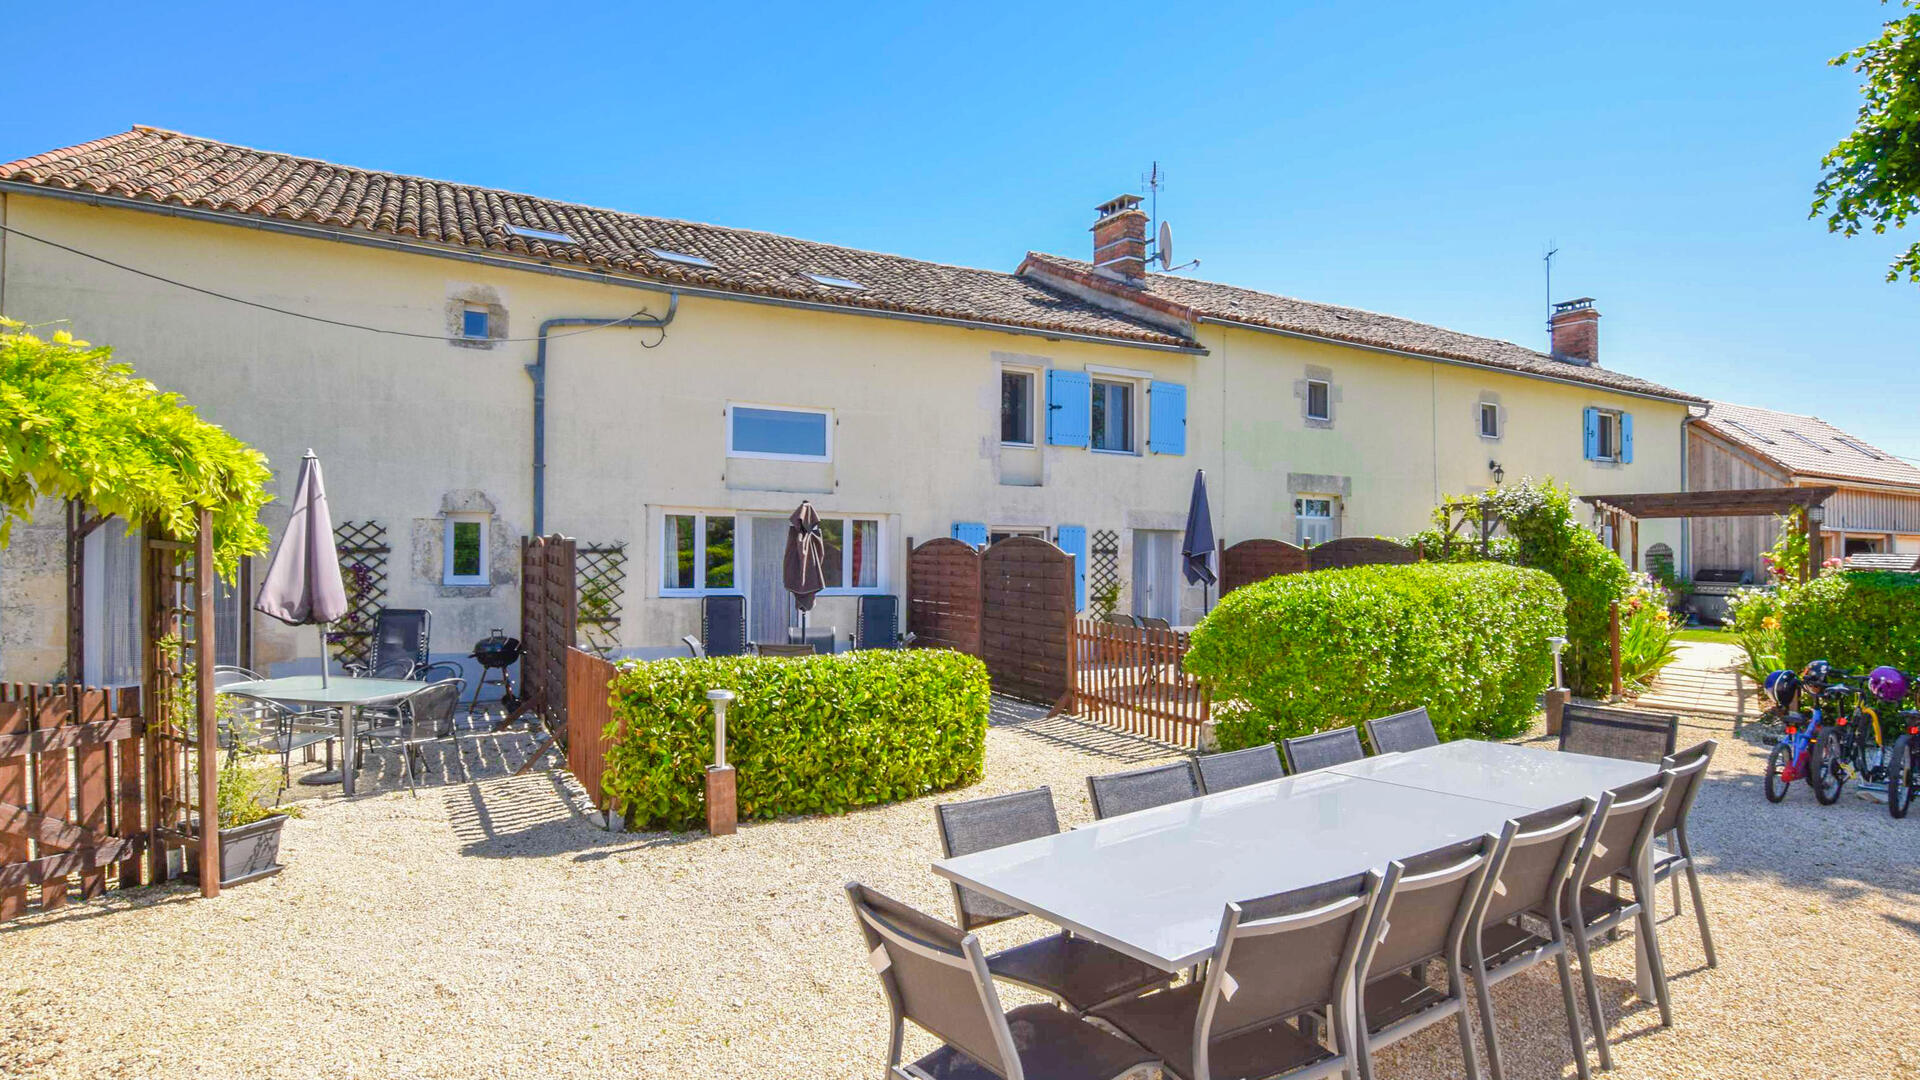 2 Bedroom Cottage/shared grounds in Poitou-Charentes, France